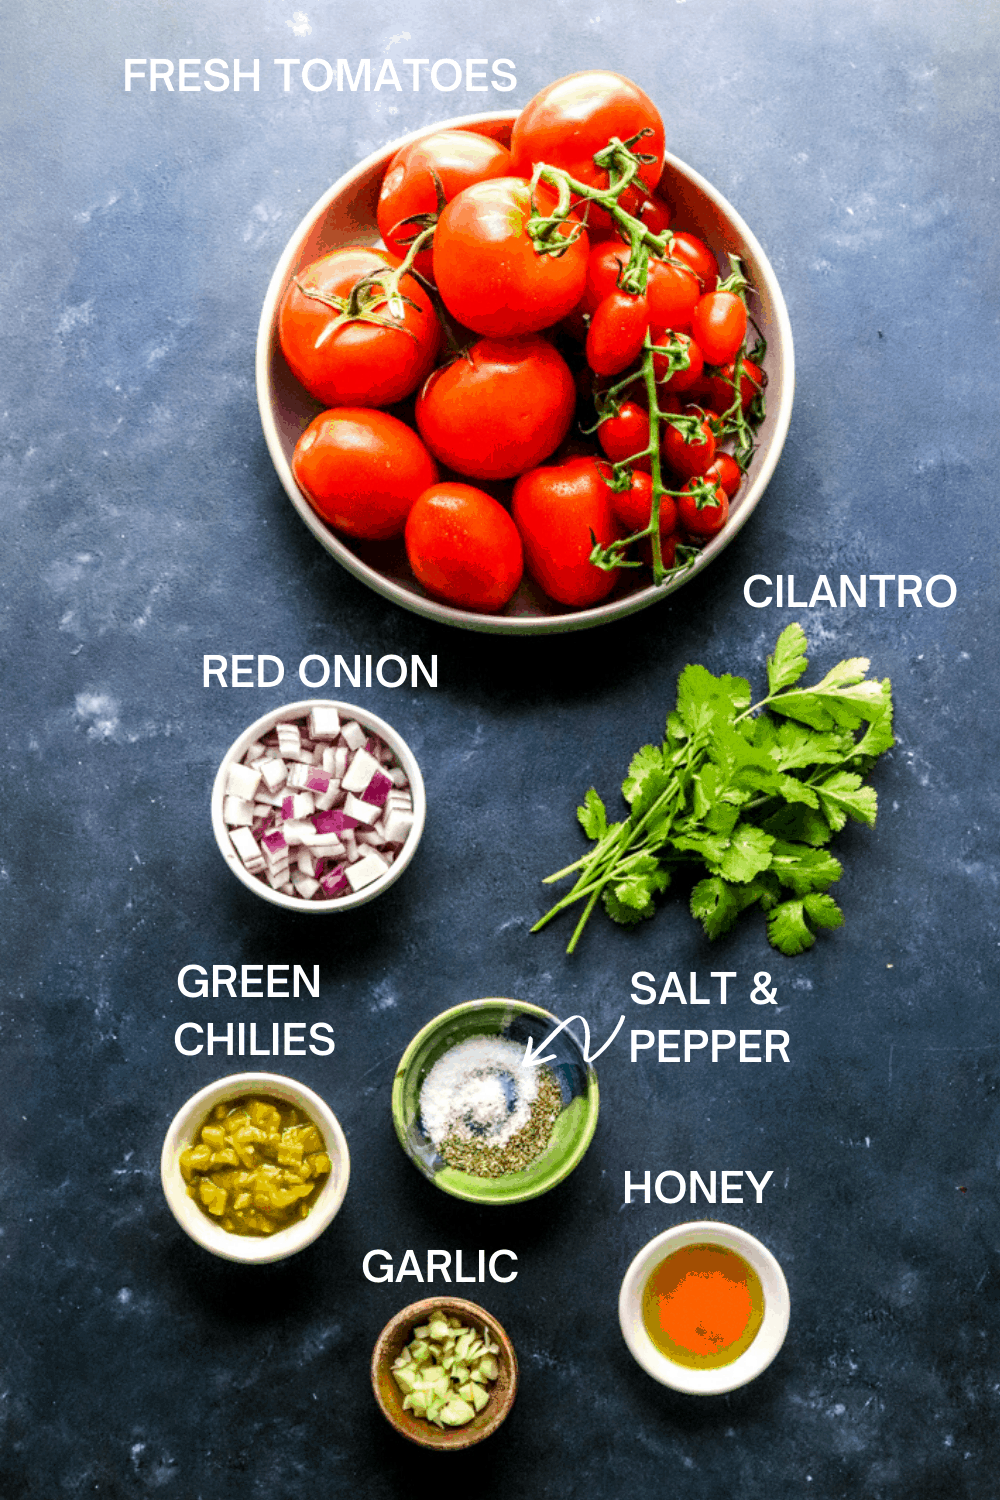 Bowl of fresh whole tomatoes, bunch of cilantro, bowl of chopped red onion, bowl go green chilies, bowl of salt and pepper, honey and bowl of garlic on a dark blue surface